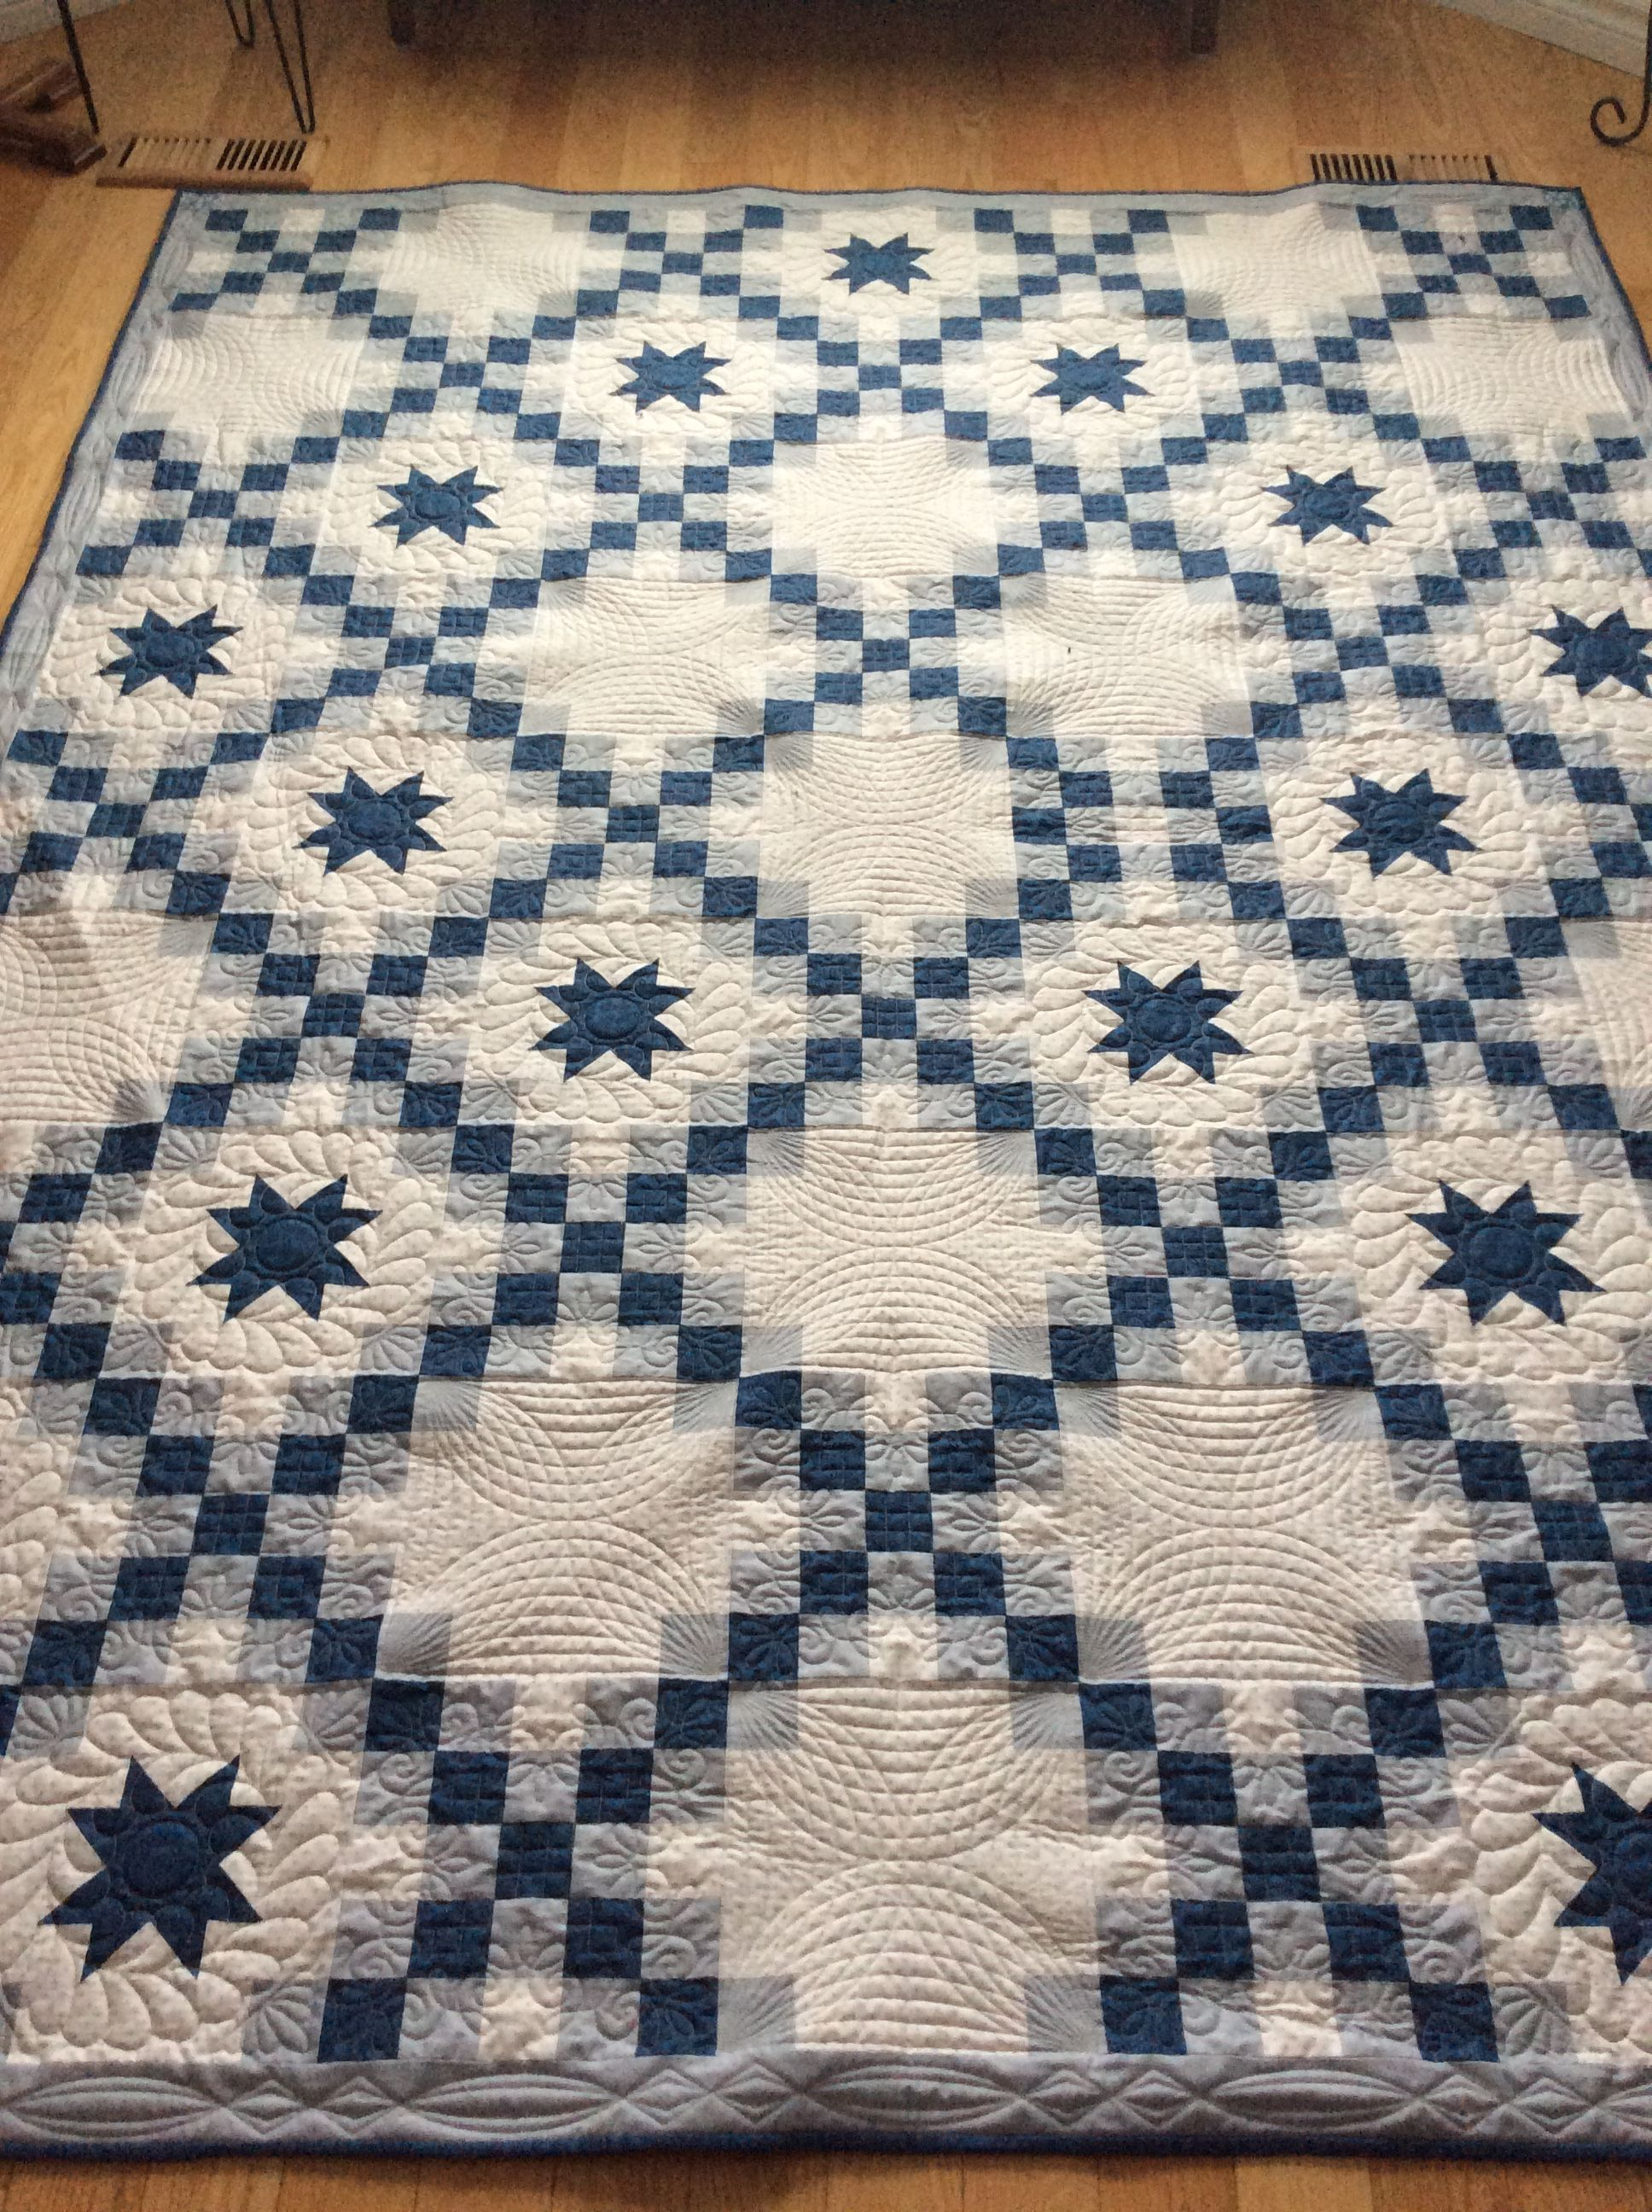 Blue And Grey Double Irish Chain Quilt Quilted By Red Red Bobbin Irish Chain Quilt Double Irish Chain Quilt Irish Chain Quilt Pattern